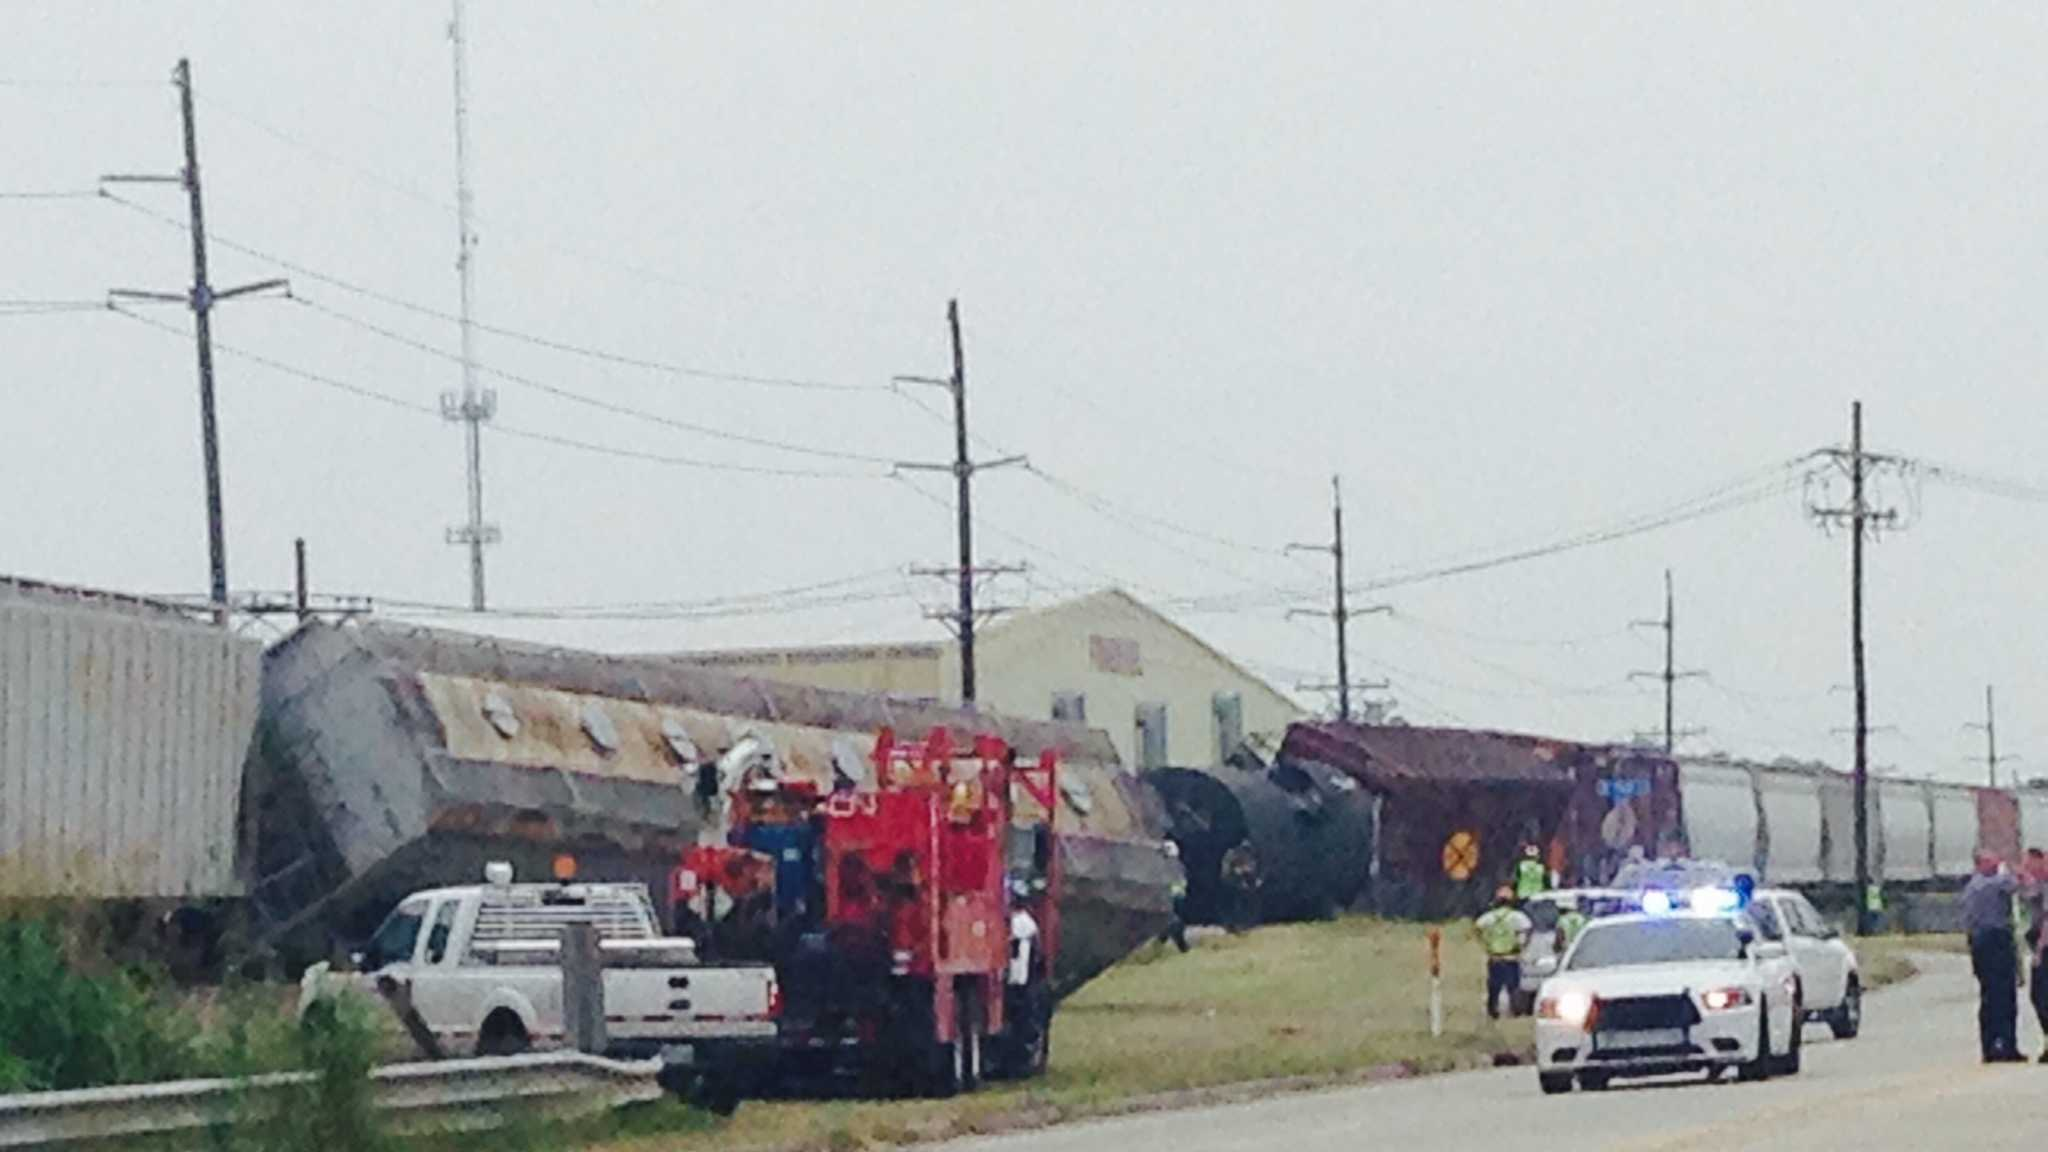 The Baton Rouge Fire Department says six tank cars and boxcars in the middle of a Canadian National freight train have derailed.